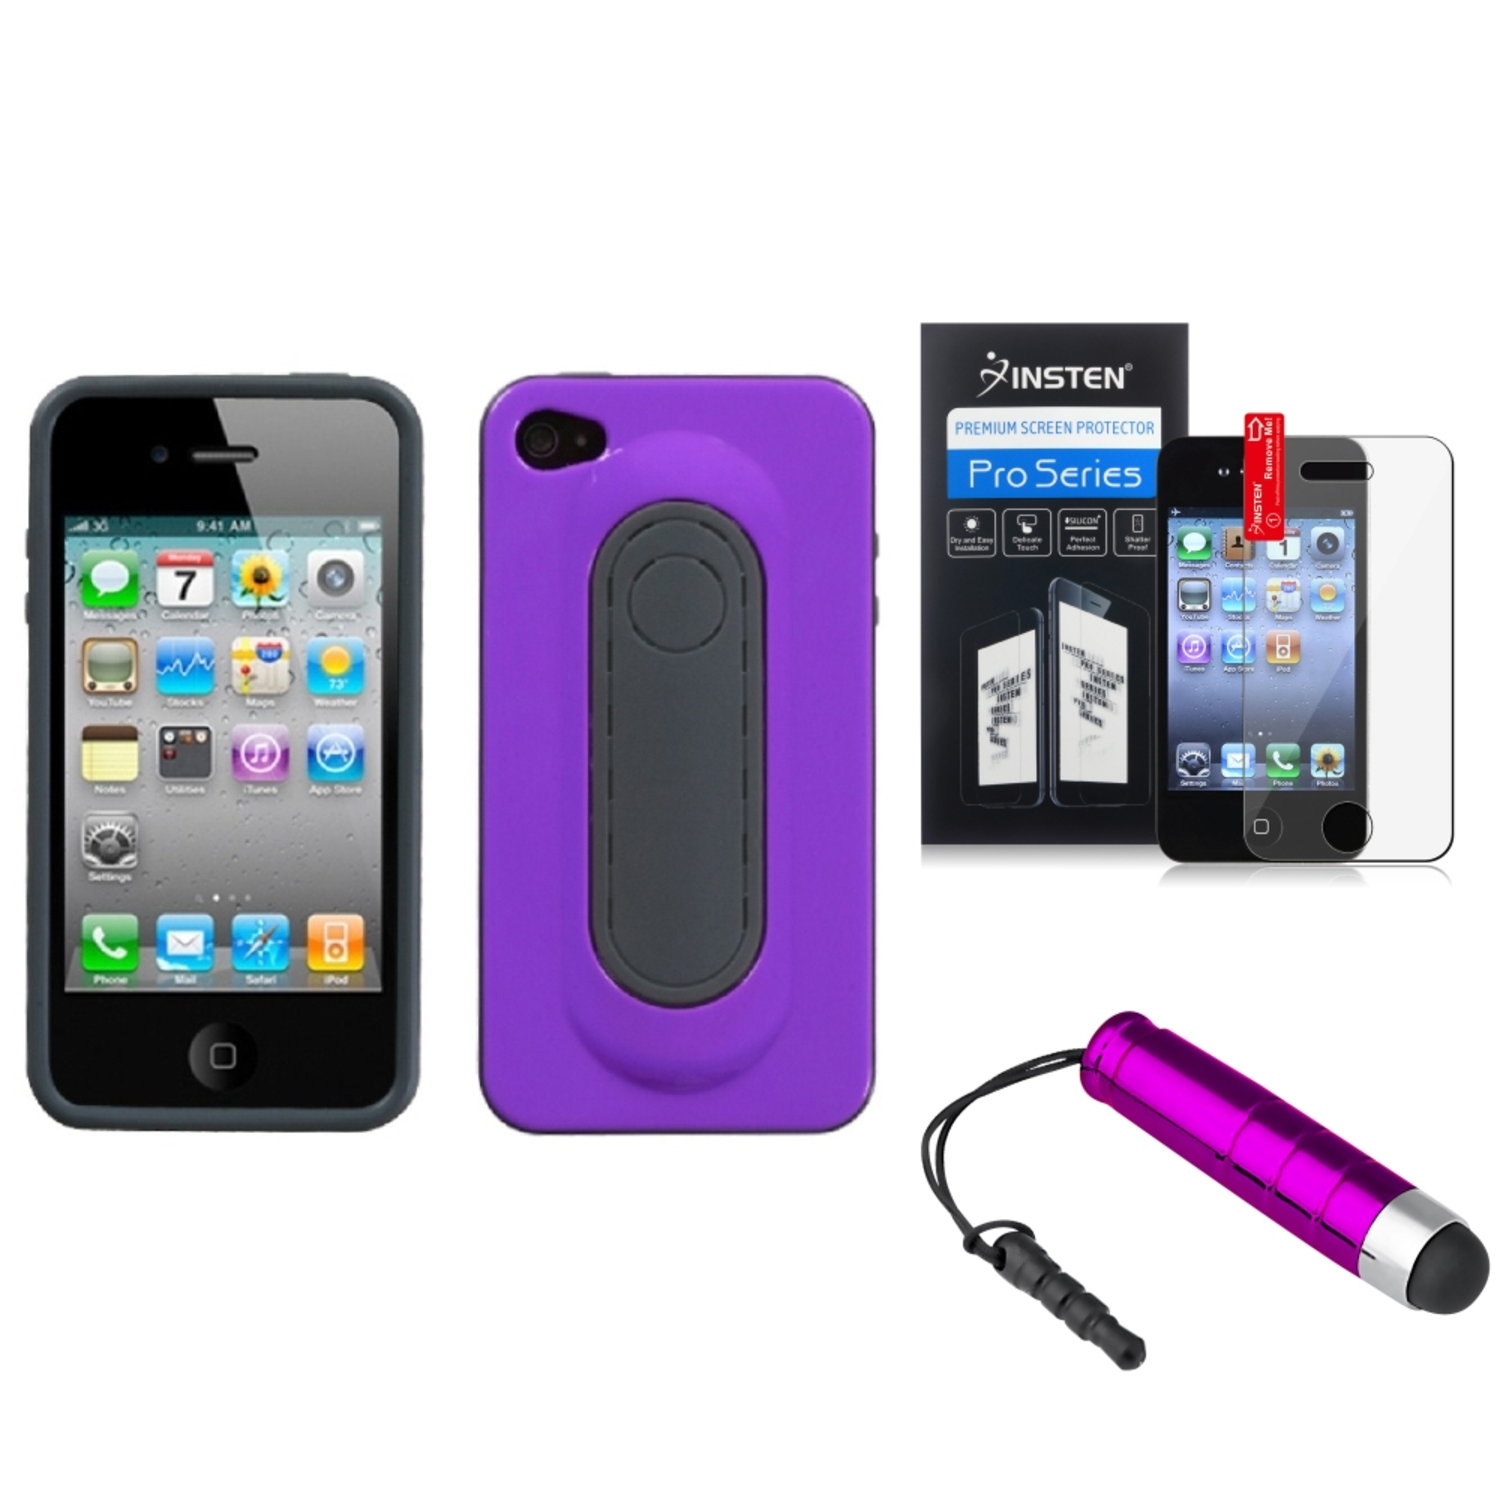 Insten Purple Snap Tail Stand Case Cover+Protector+Mini Pen For APPLE iPhone 4S/4